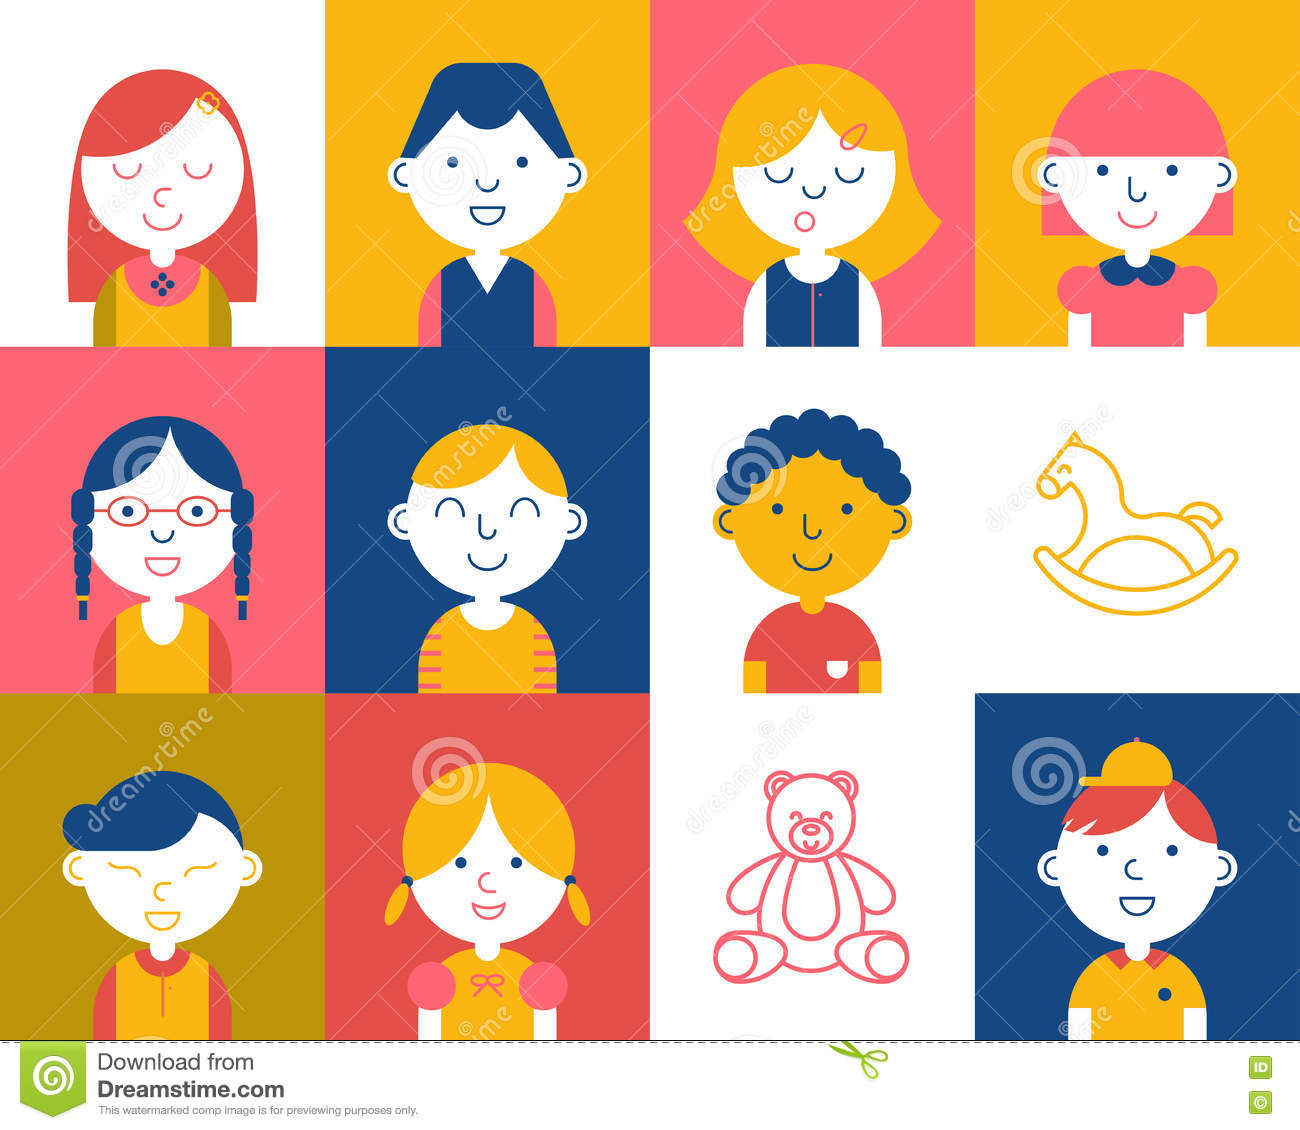 Colorful kids icon stock vector. Illustration of cheerful - 78142057